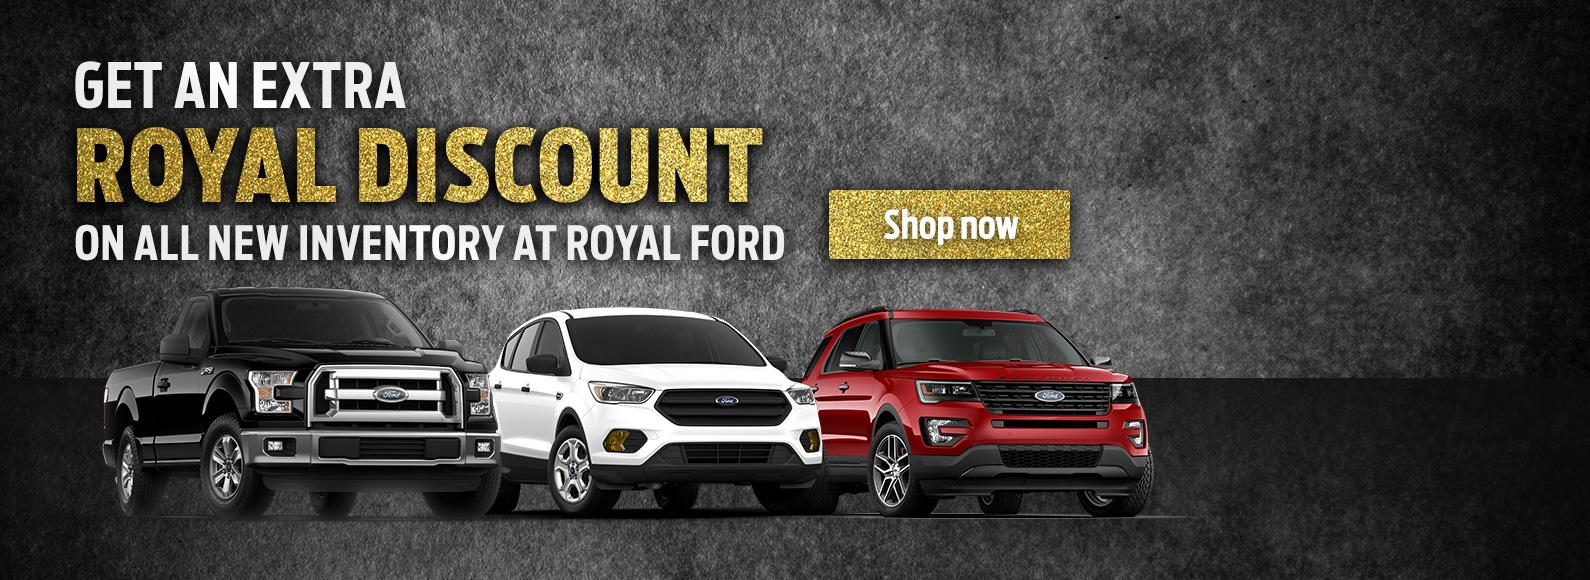 Royal Discount at Royal Ford